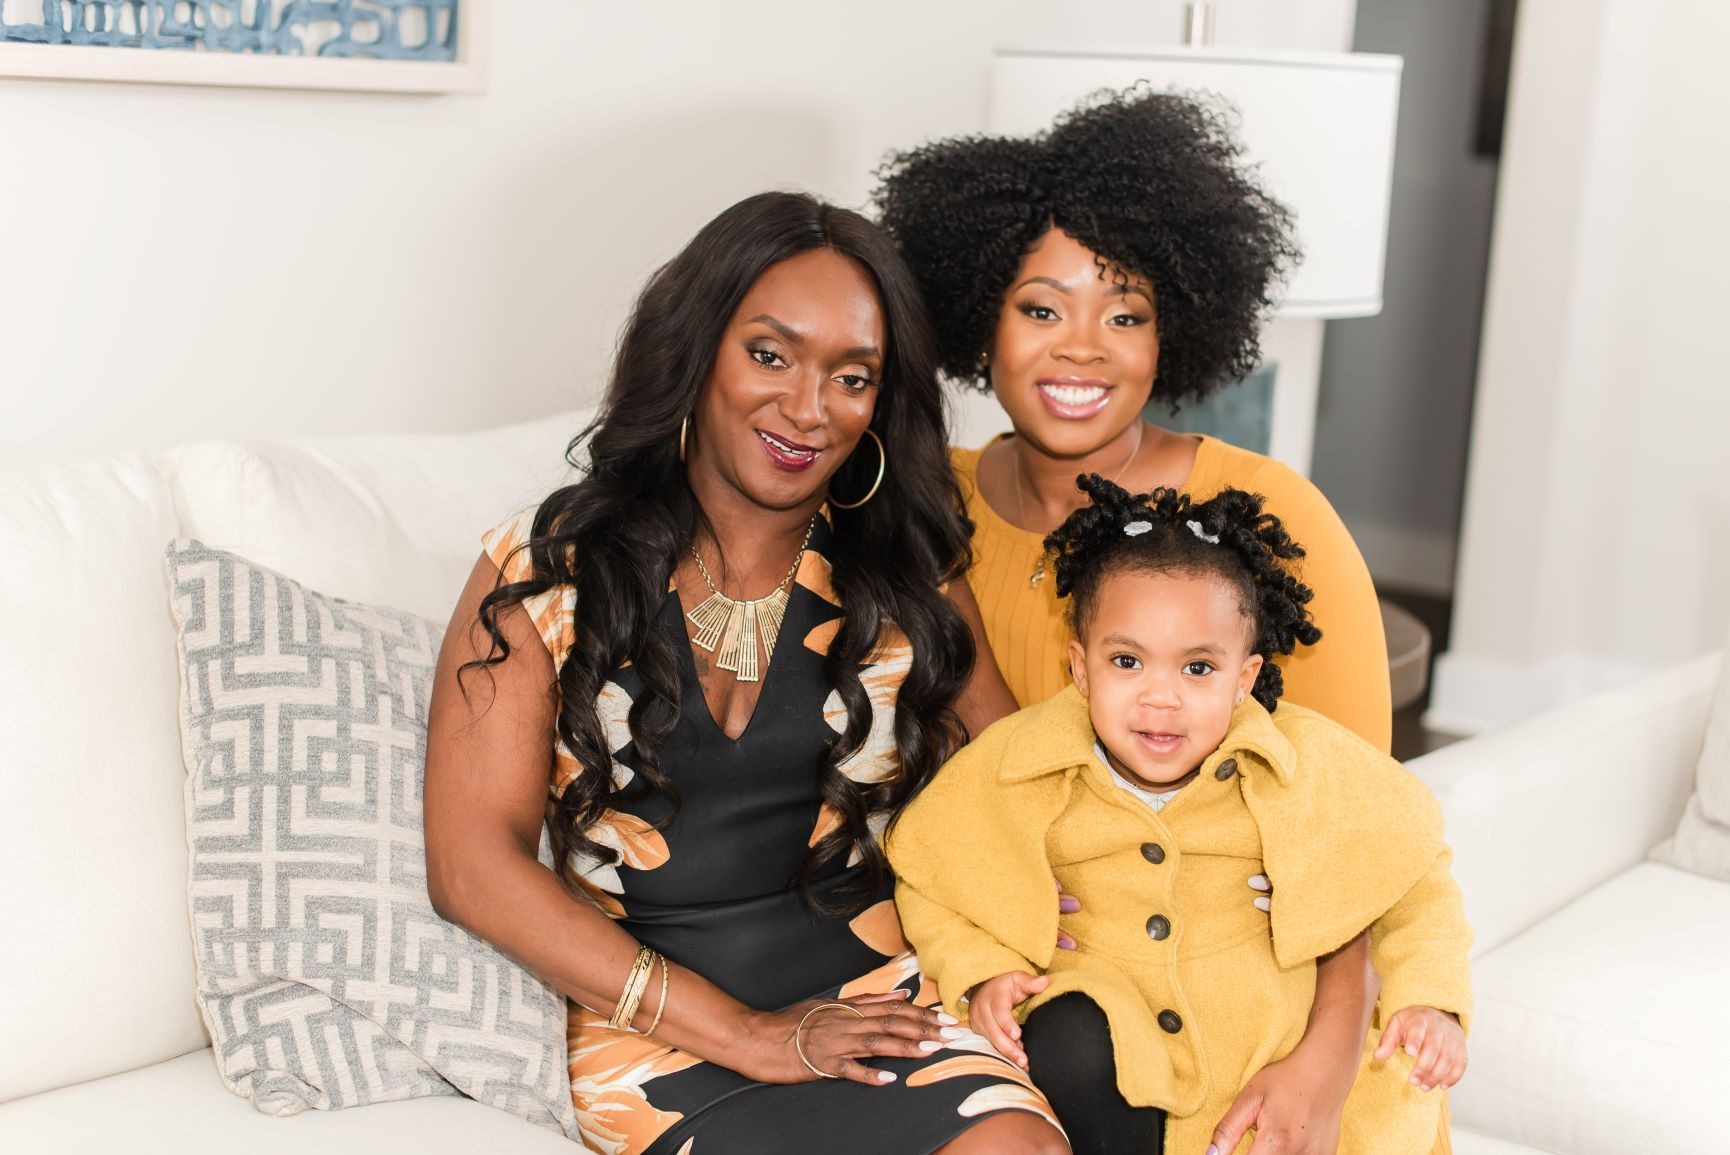 Zaria's Milk is shifting the Black breastfeeding narrative one cookie at a time